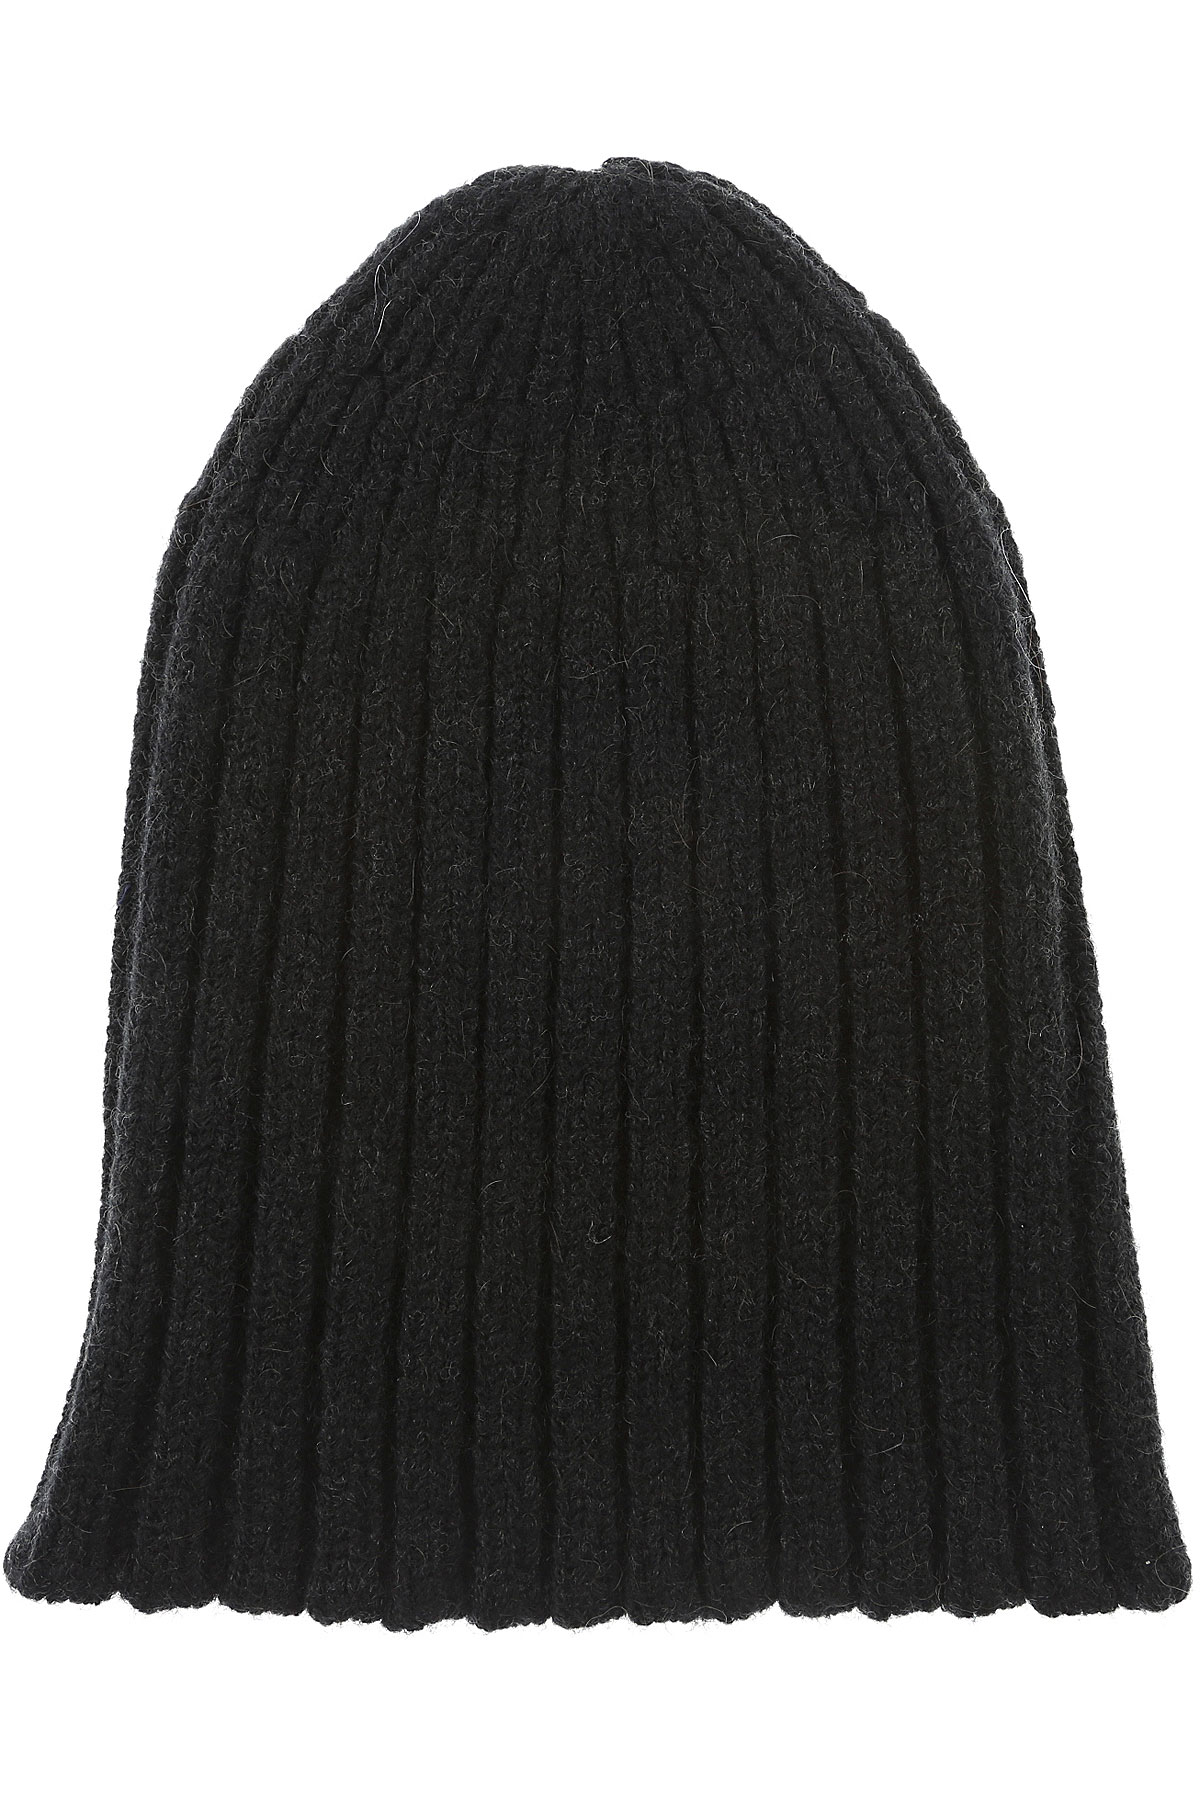 Image of Roberto Collina Hat for Women, Black, Extrafine Merino Wool, 2017